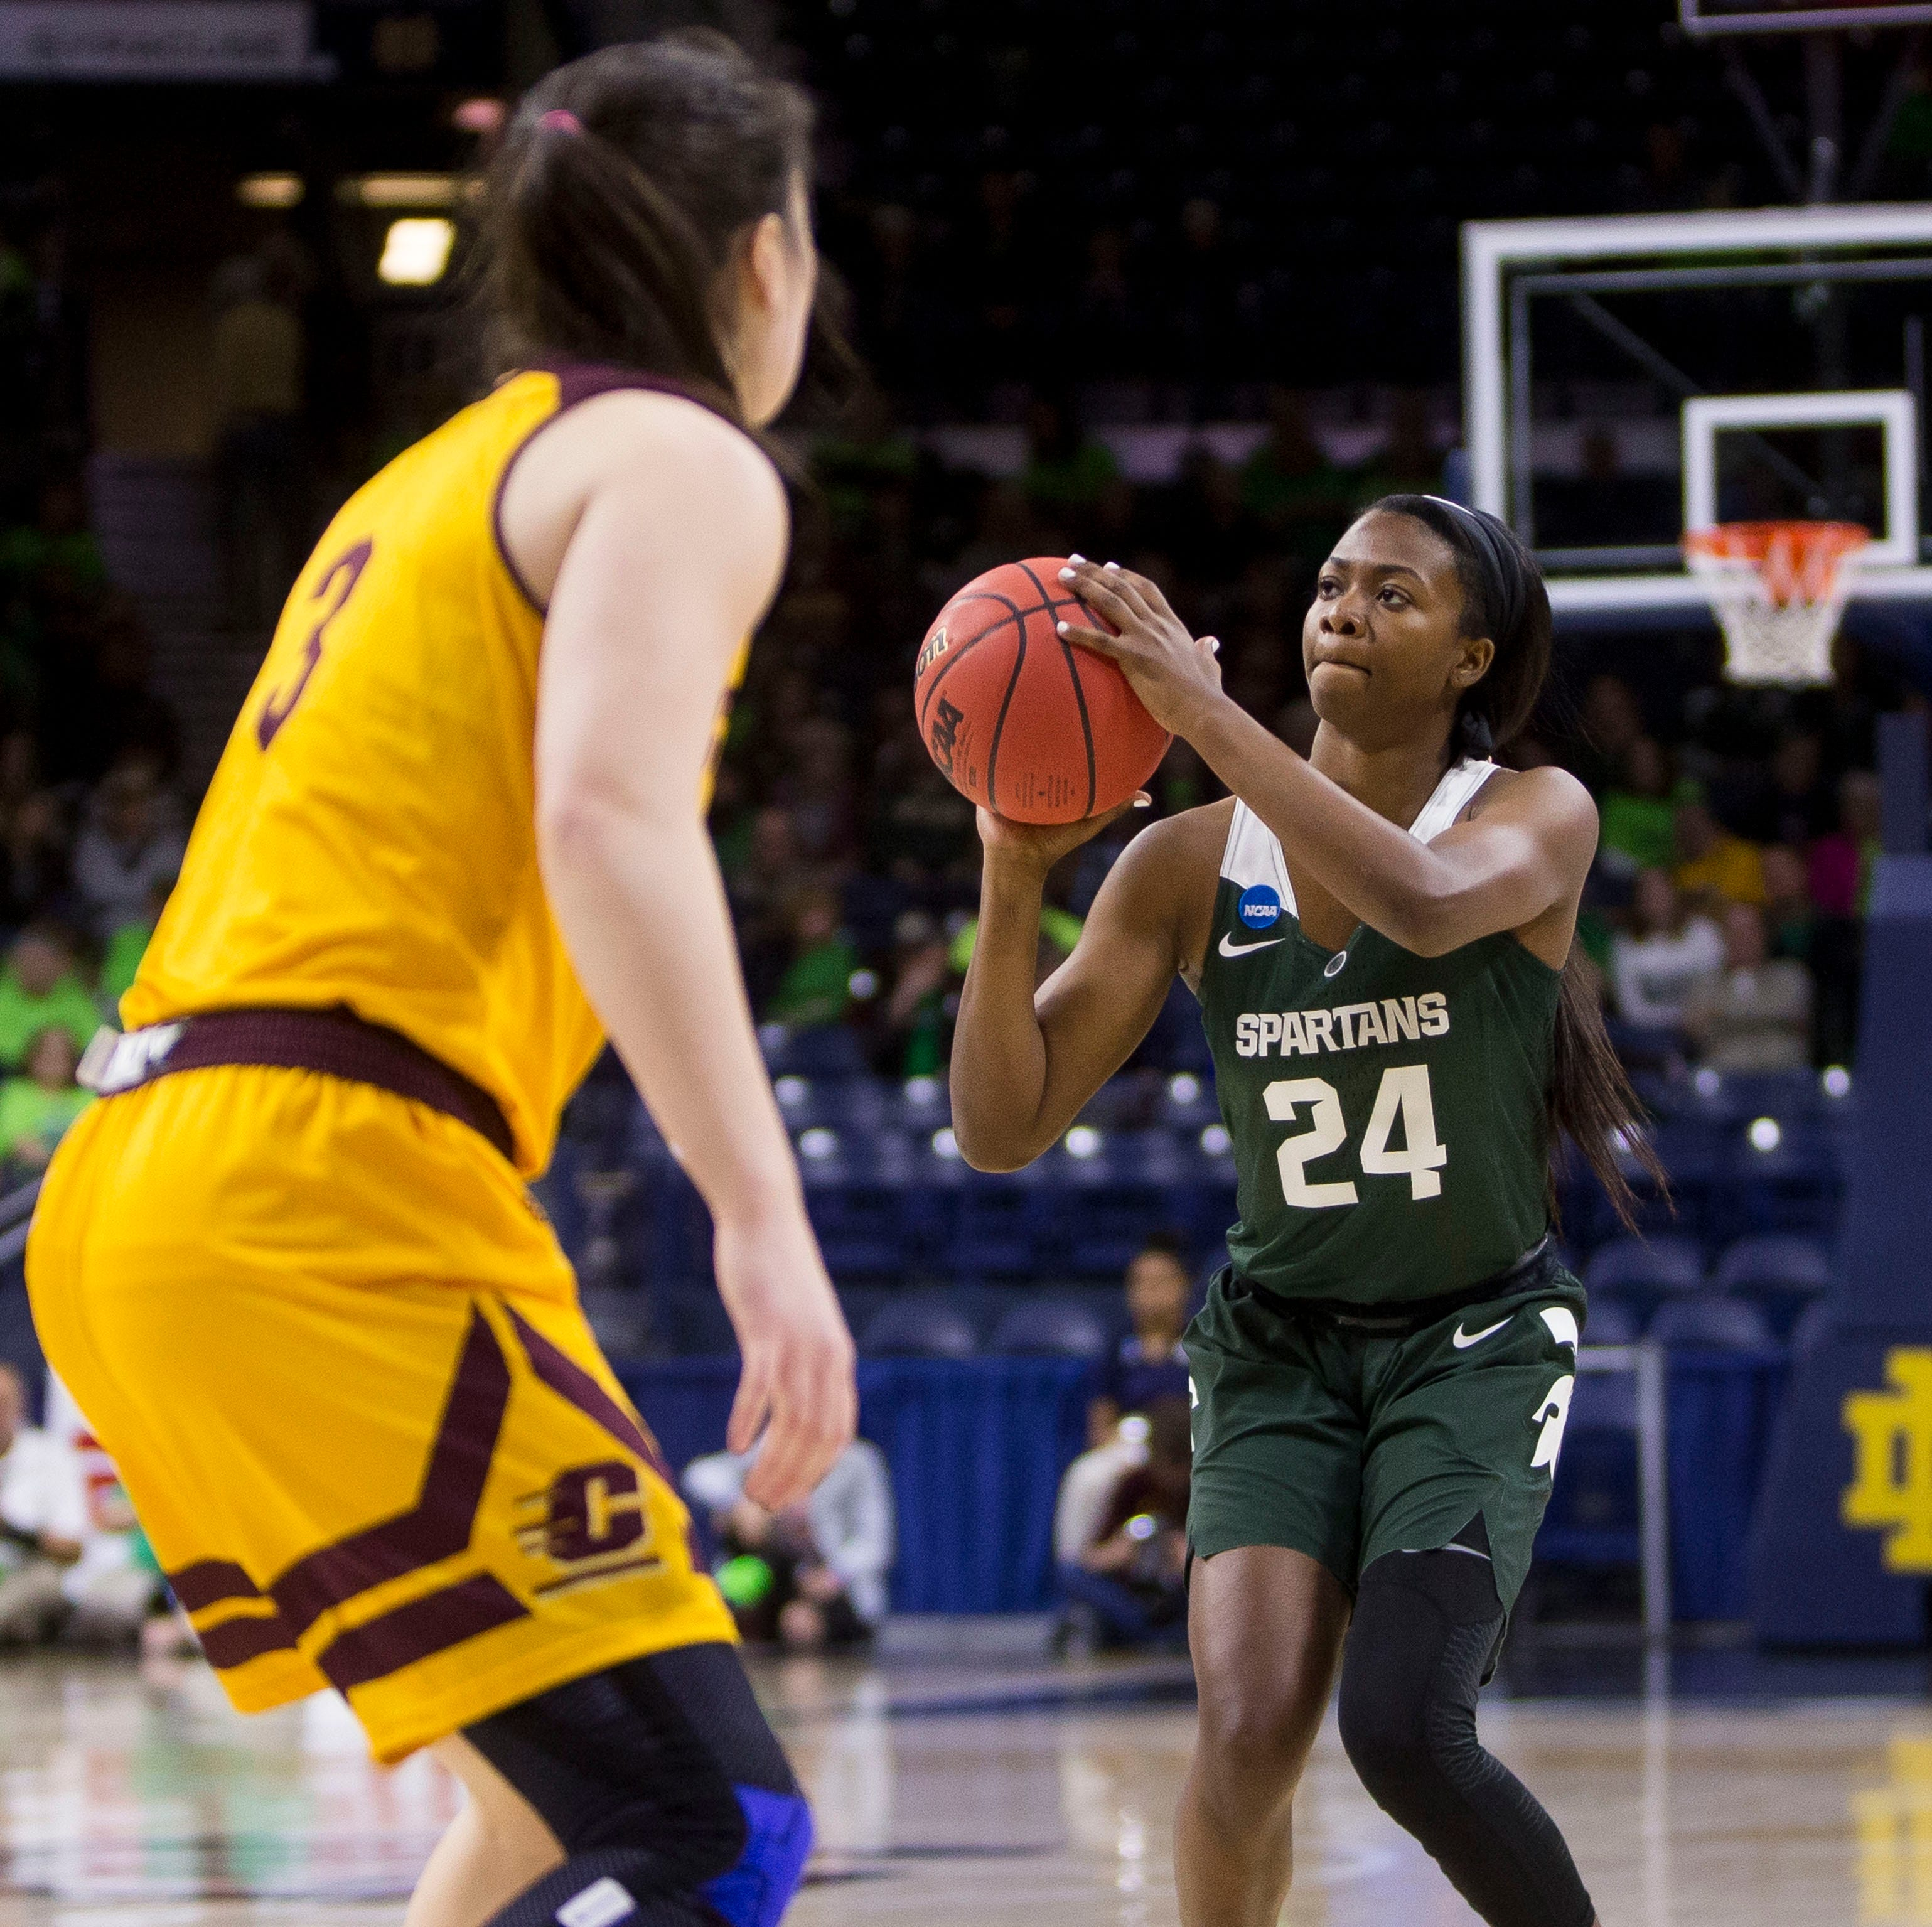 Shay Colley's late basket lifts Michigan State women's basketball past Central Michigan